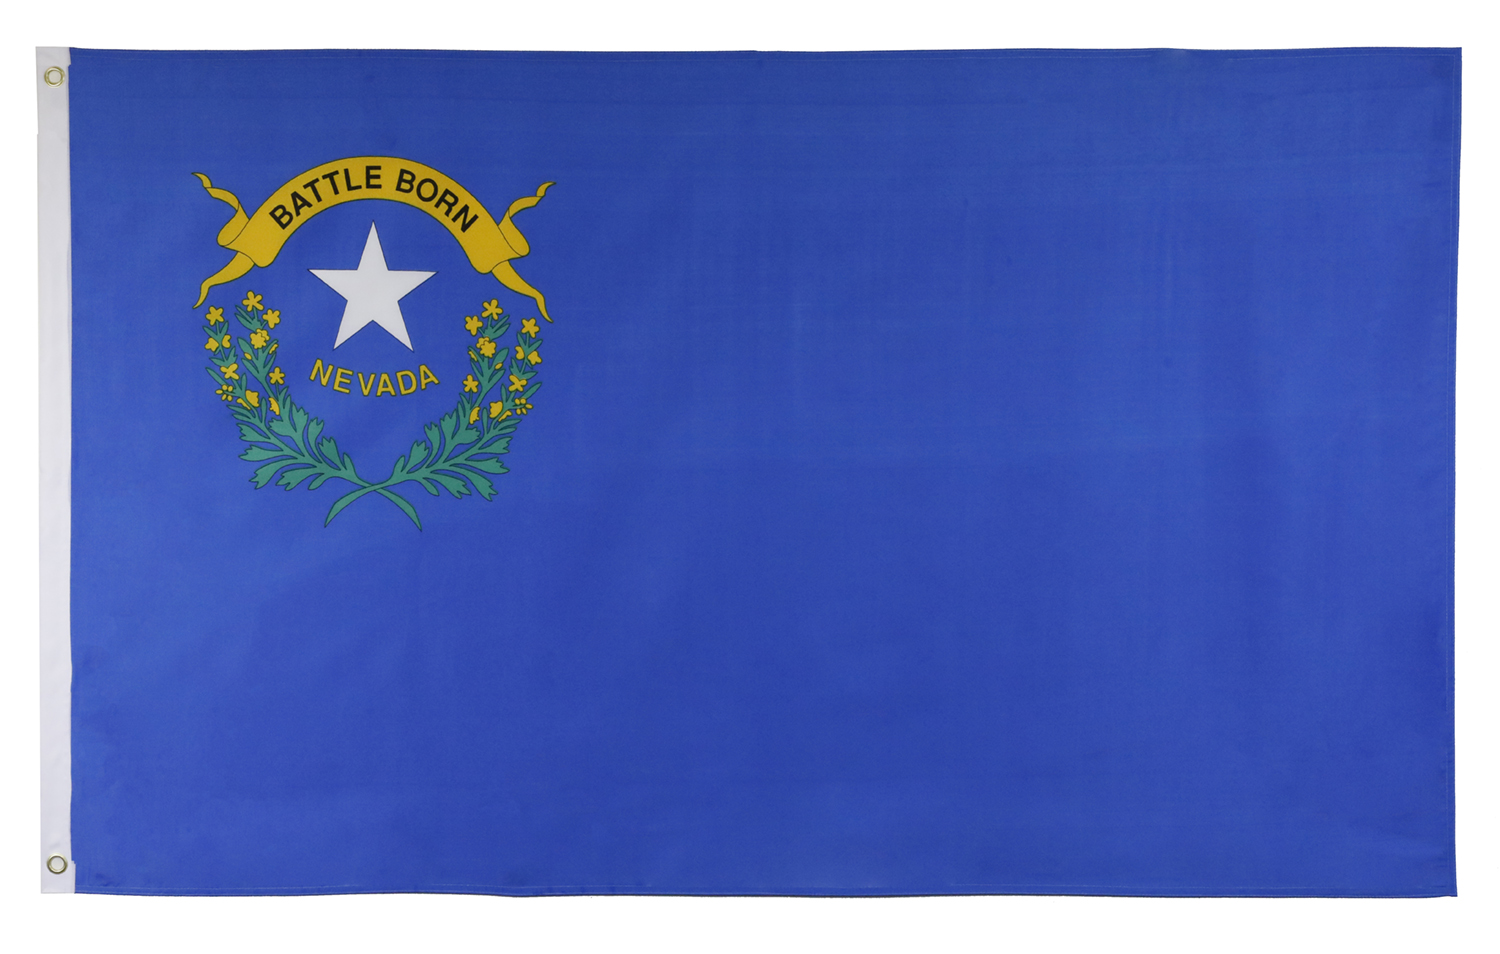 Shop72 US Nevada State Flags - Nevada Flag - 3x5' Flag from Sturdy 100D Polyester - Canvas Header Brass Grommets Double Stitched from Wind Side